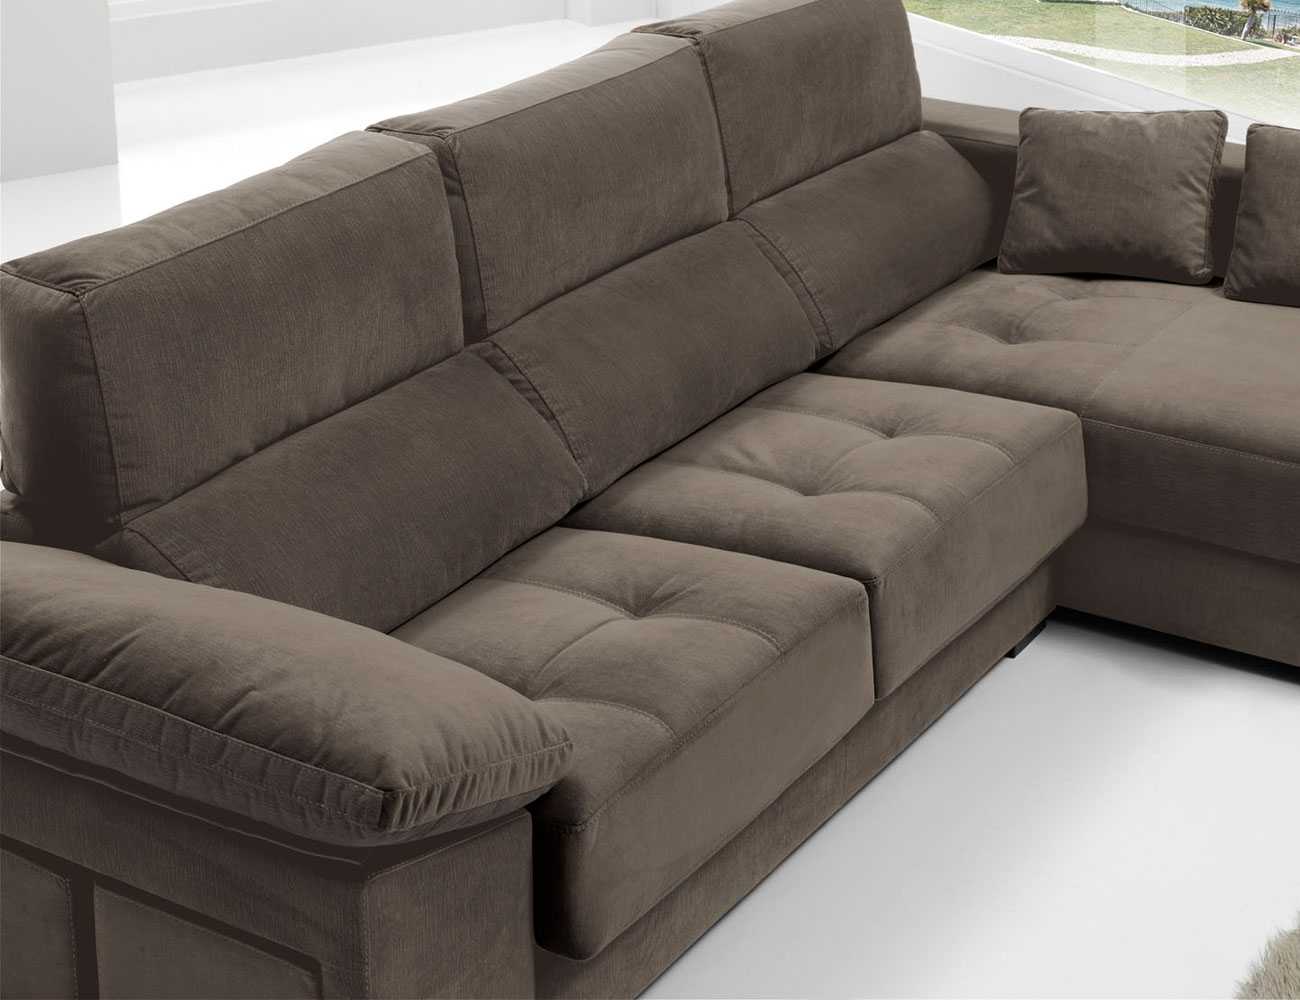 Sofa chaiselongue anti manchas bering pouf 23